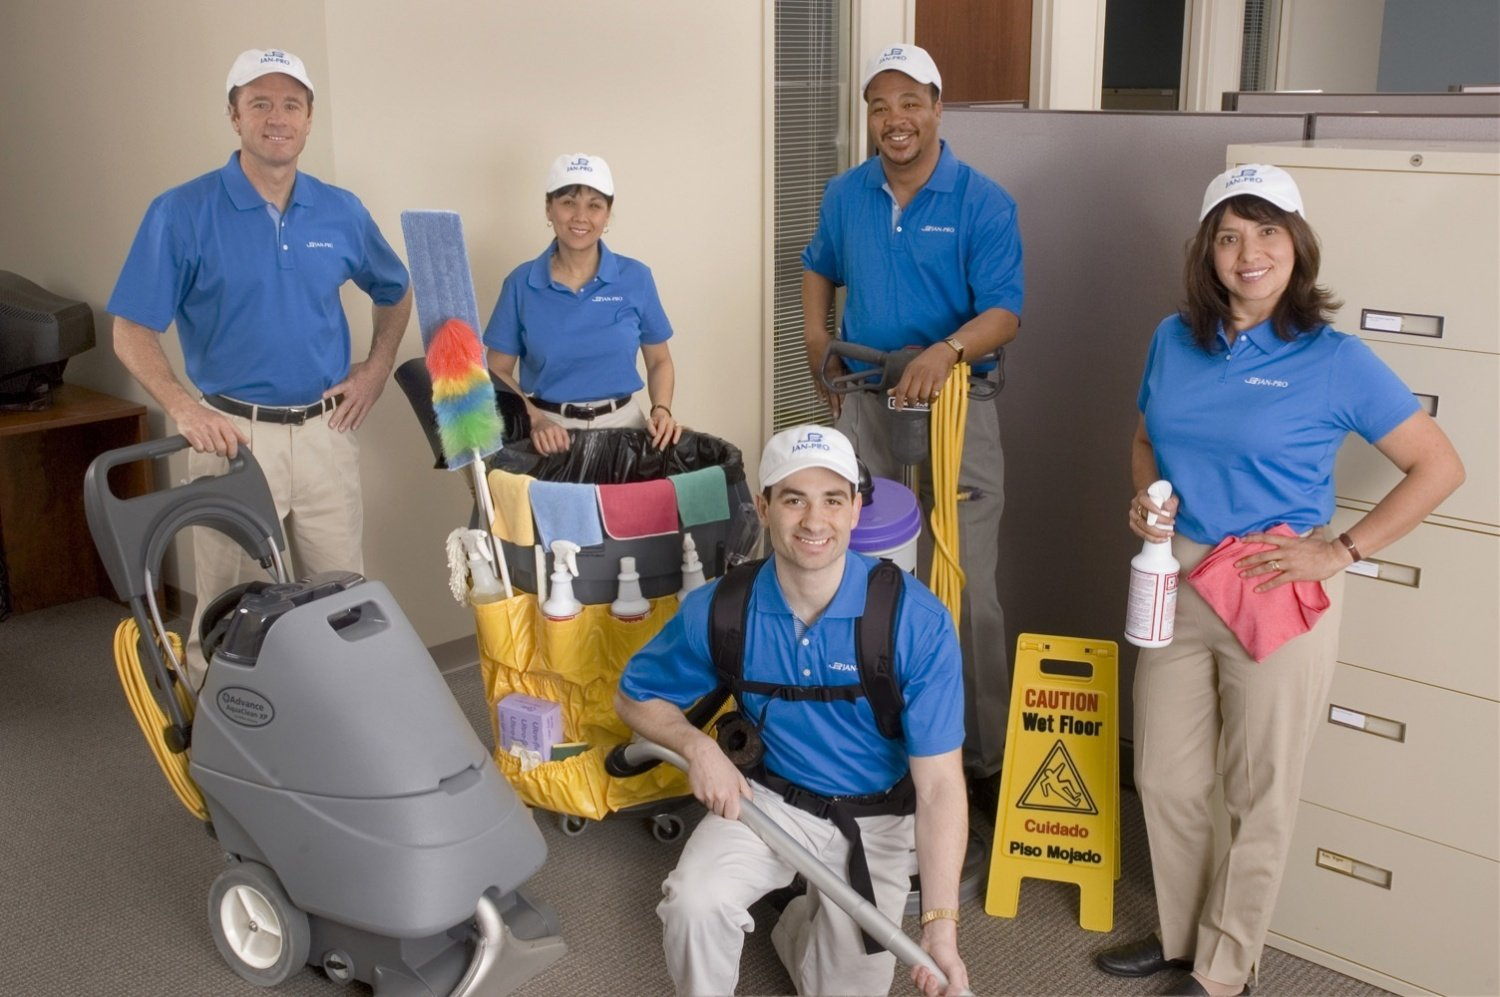 Grow your Cleaning Business With these 4 Tips!